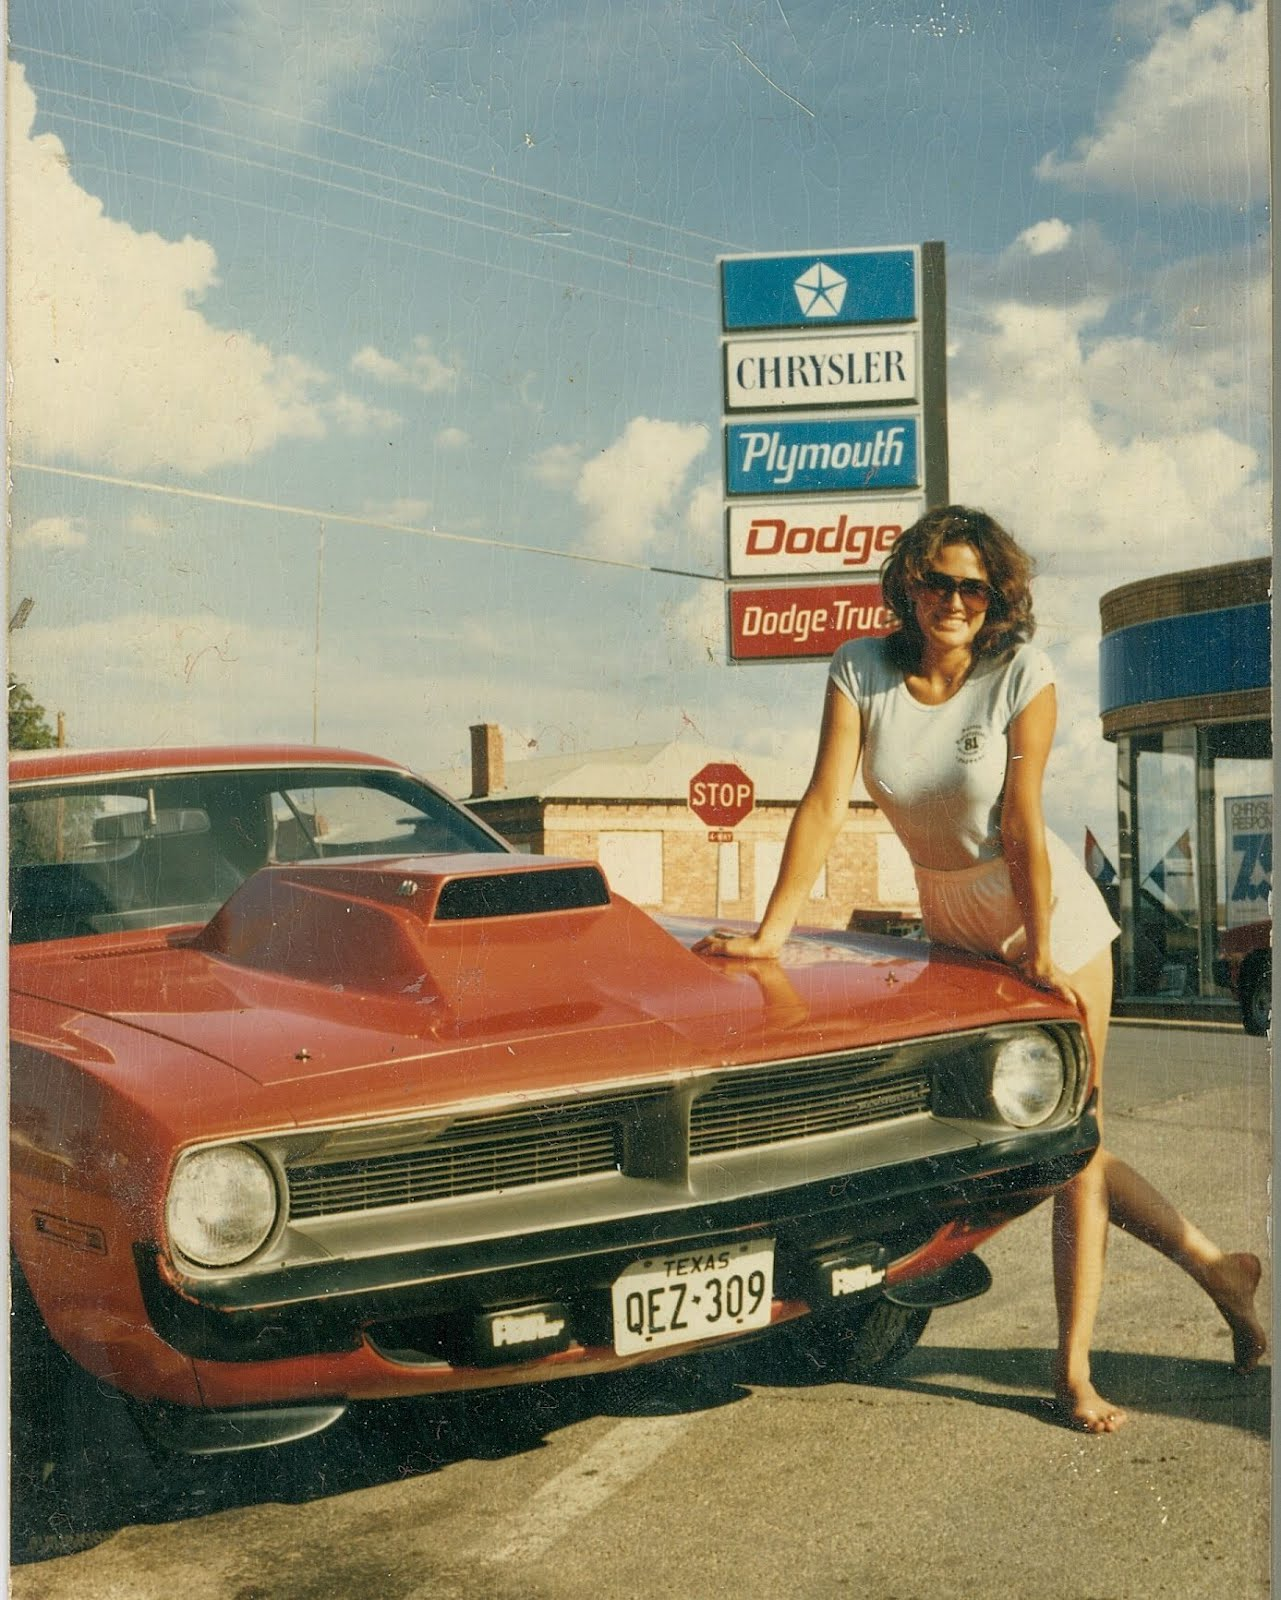 Vintage Playboy Models and Cars (Need We Say More?) - The